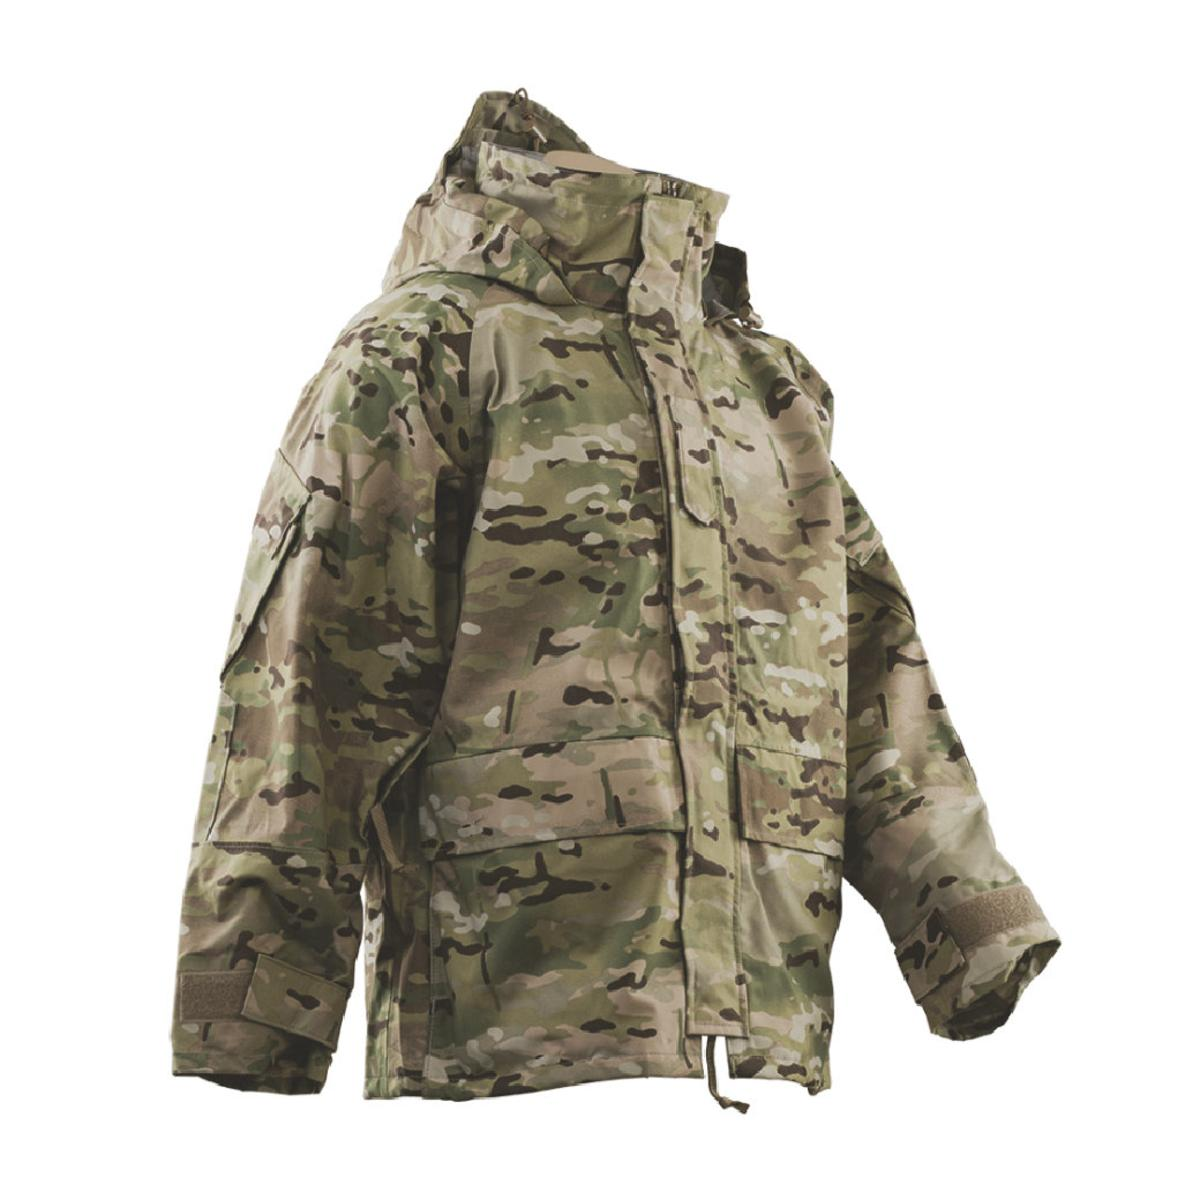 2026 H2O Proof Gen 2 ECWCS Parka, MultiCam